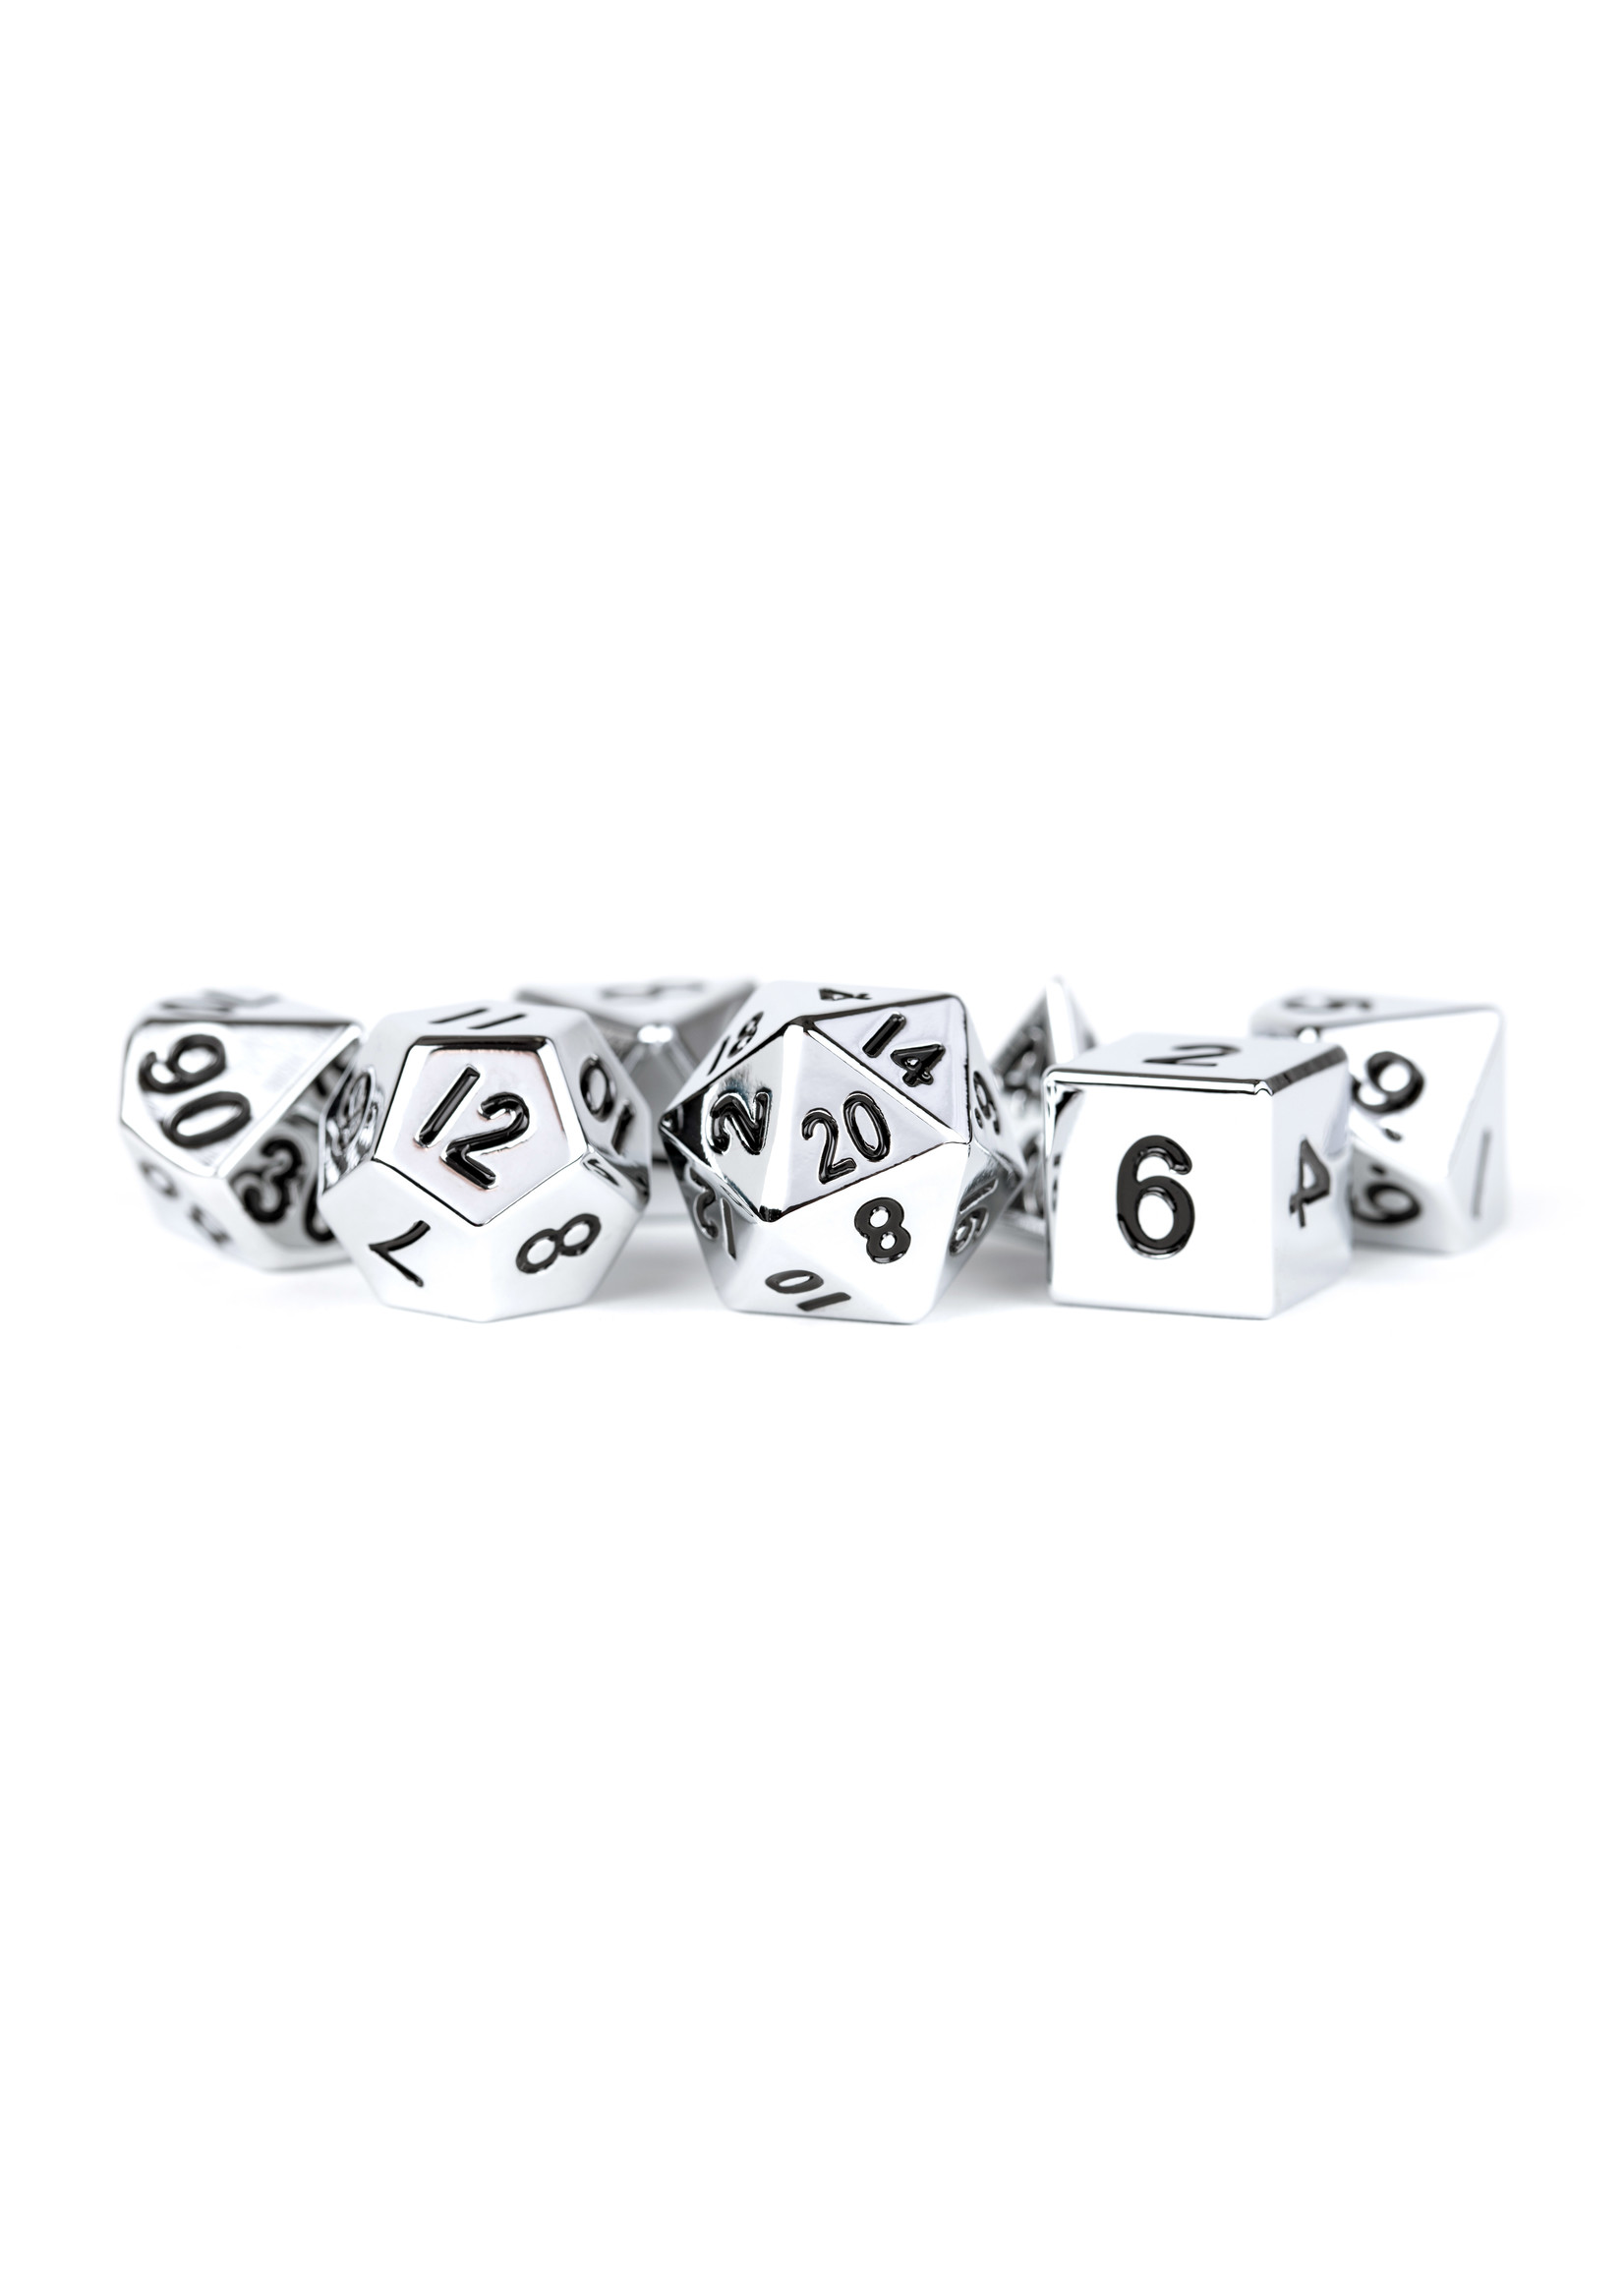 16mm Silver Metal Dice Set